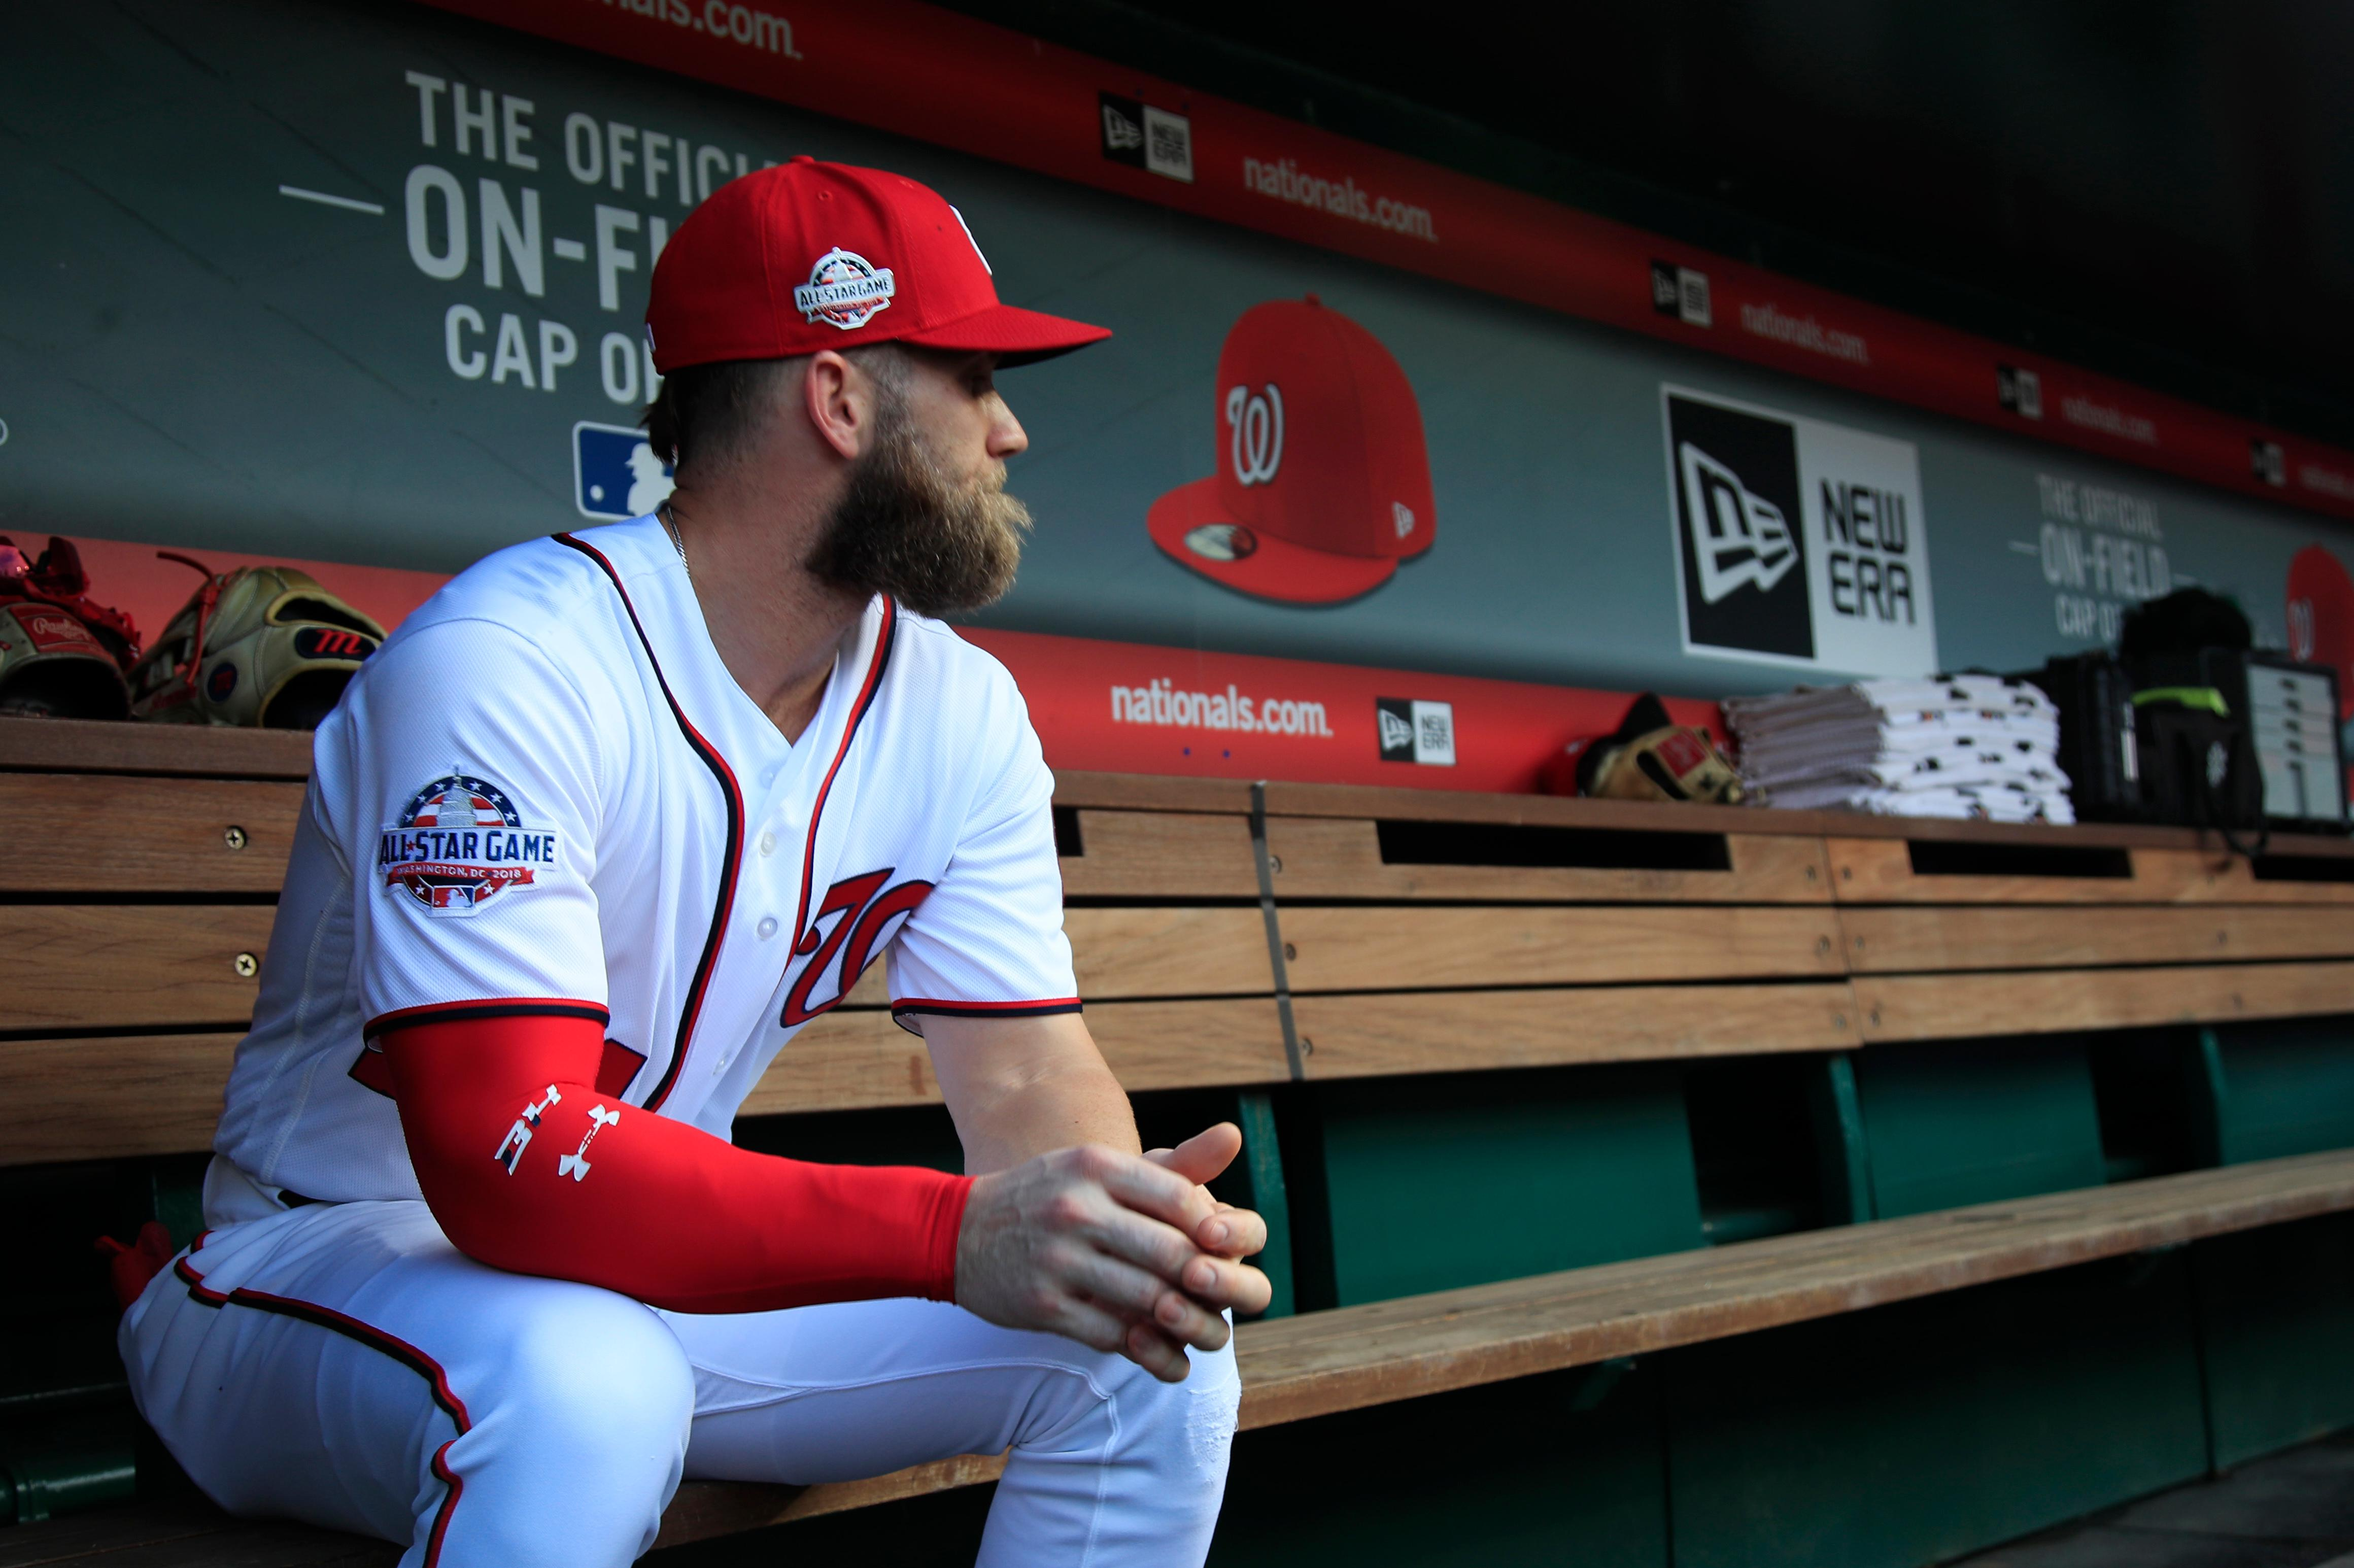 Washington Nationals Bryce Harper, looks at the baseball field from their dug out before the start of the Nationals last home game of the season against the Miami Marlins in Washington, Wednesday, Sept. 26, 2018. (AP Photo/Manuel Balce Ceneta)